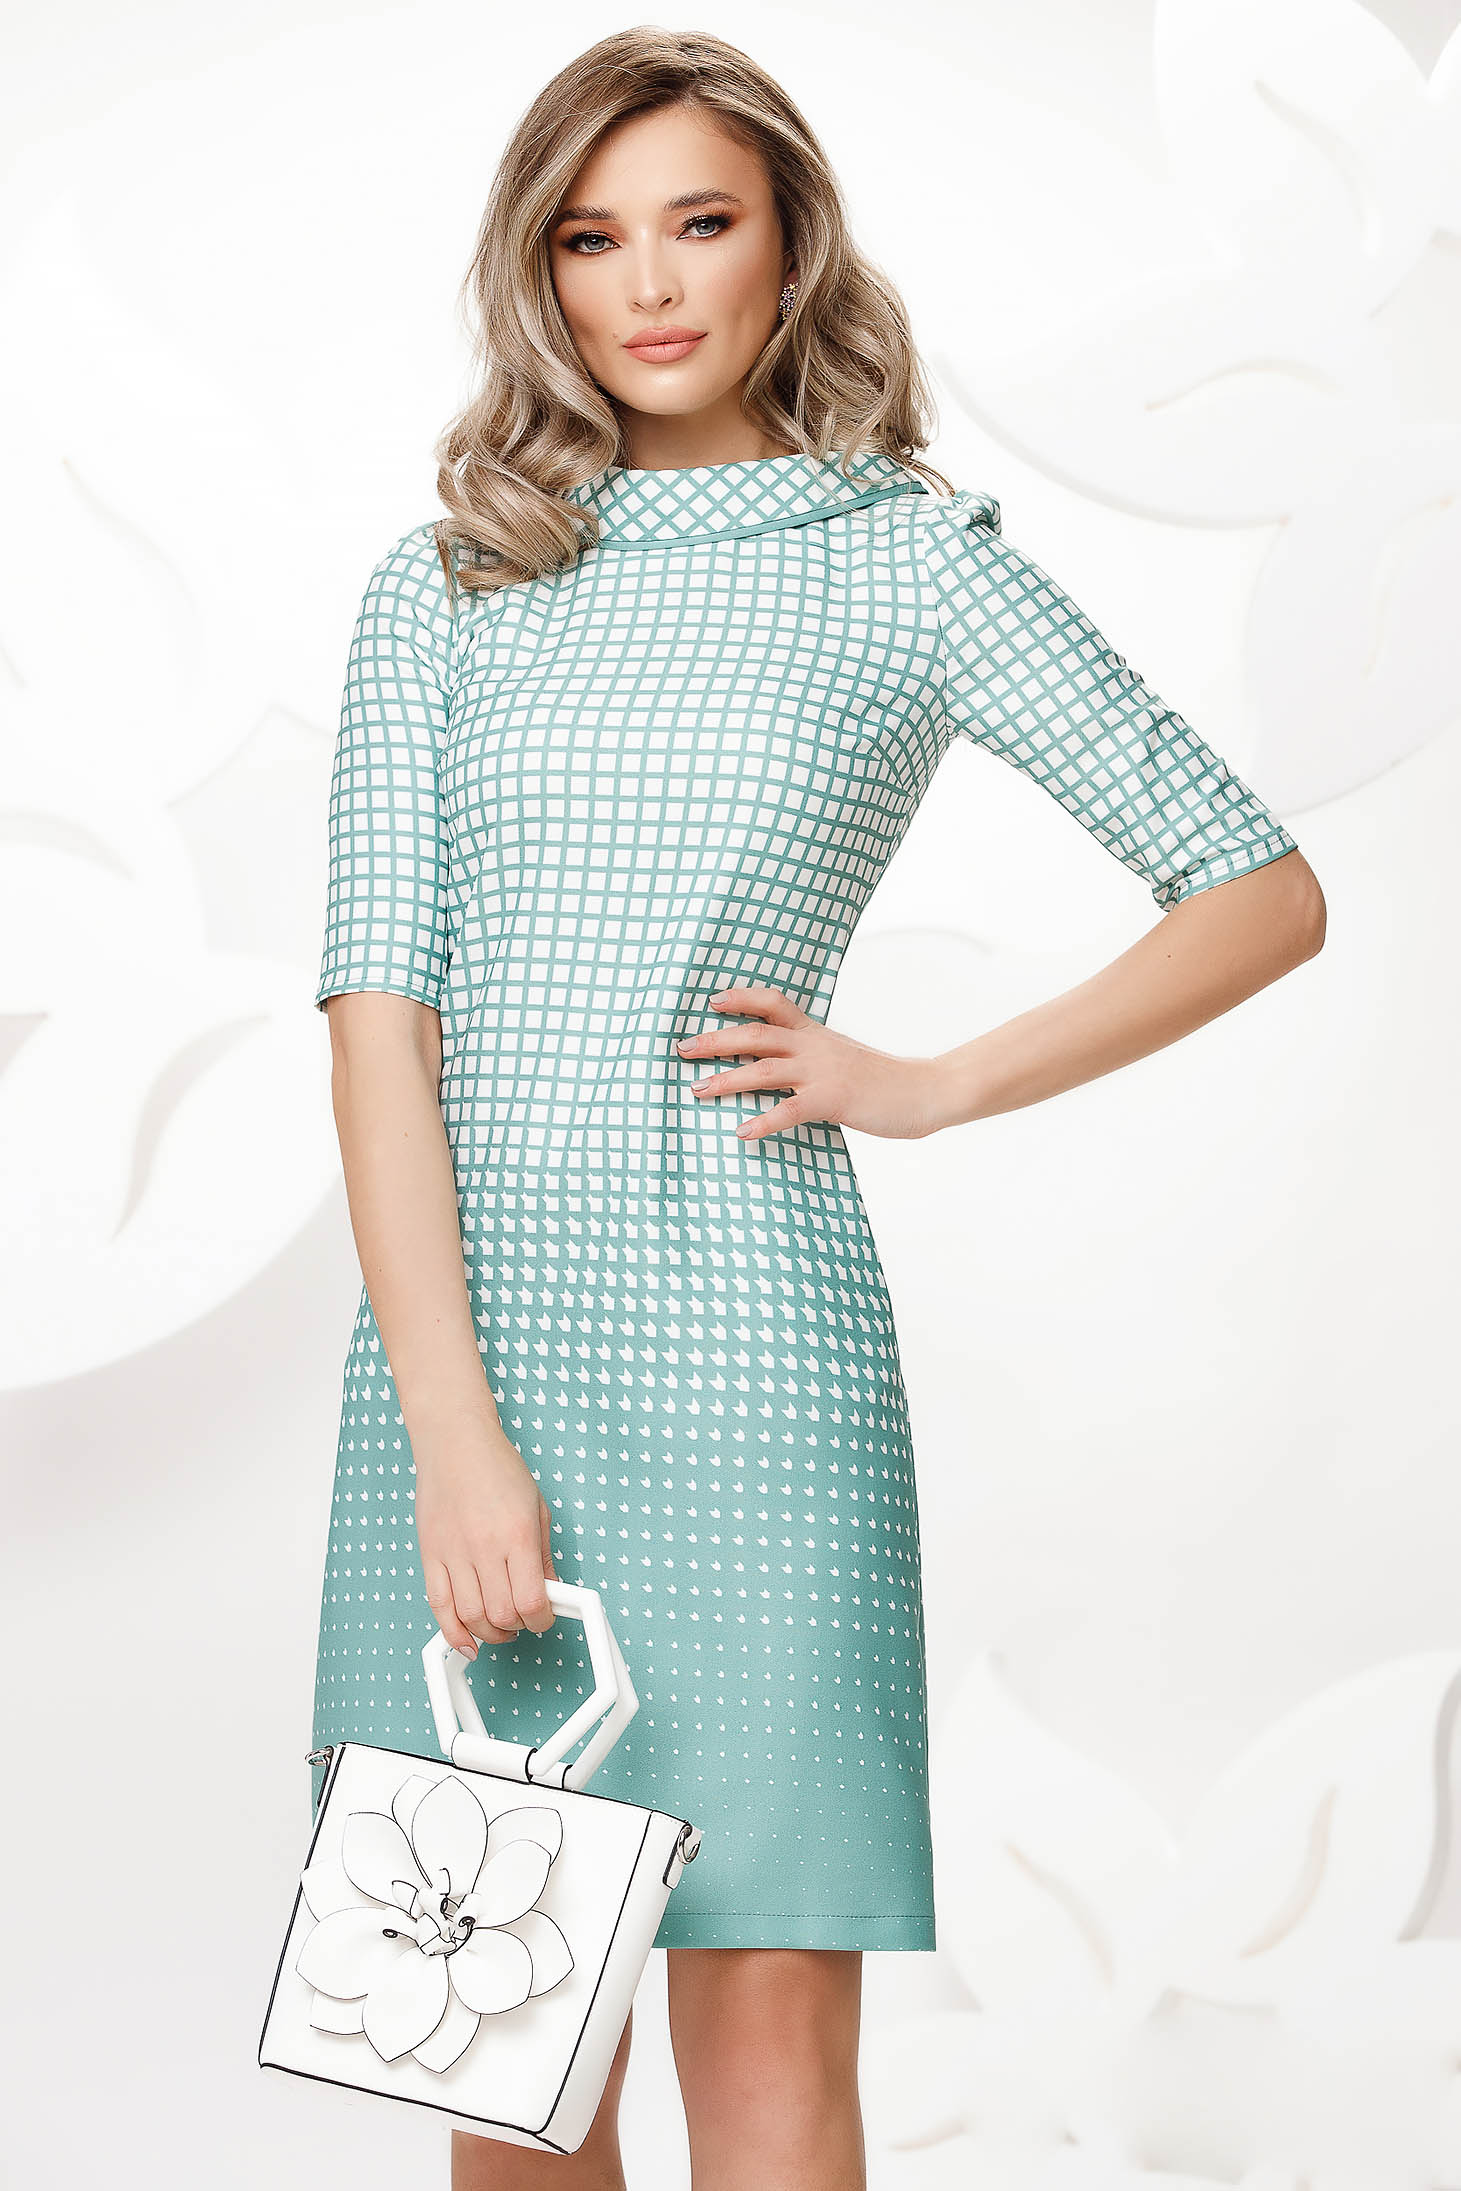 Turquoise dress office slightly elastic fabric double collar with chequers